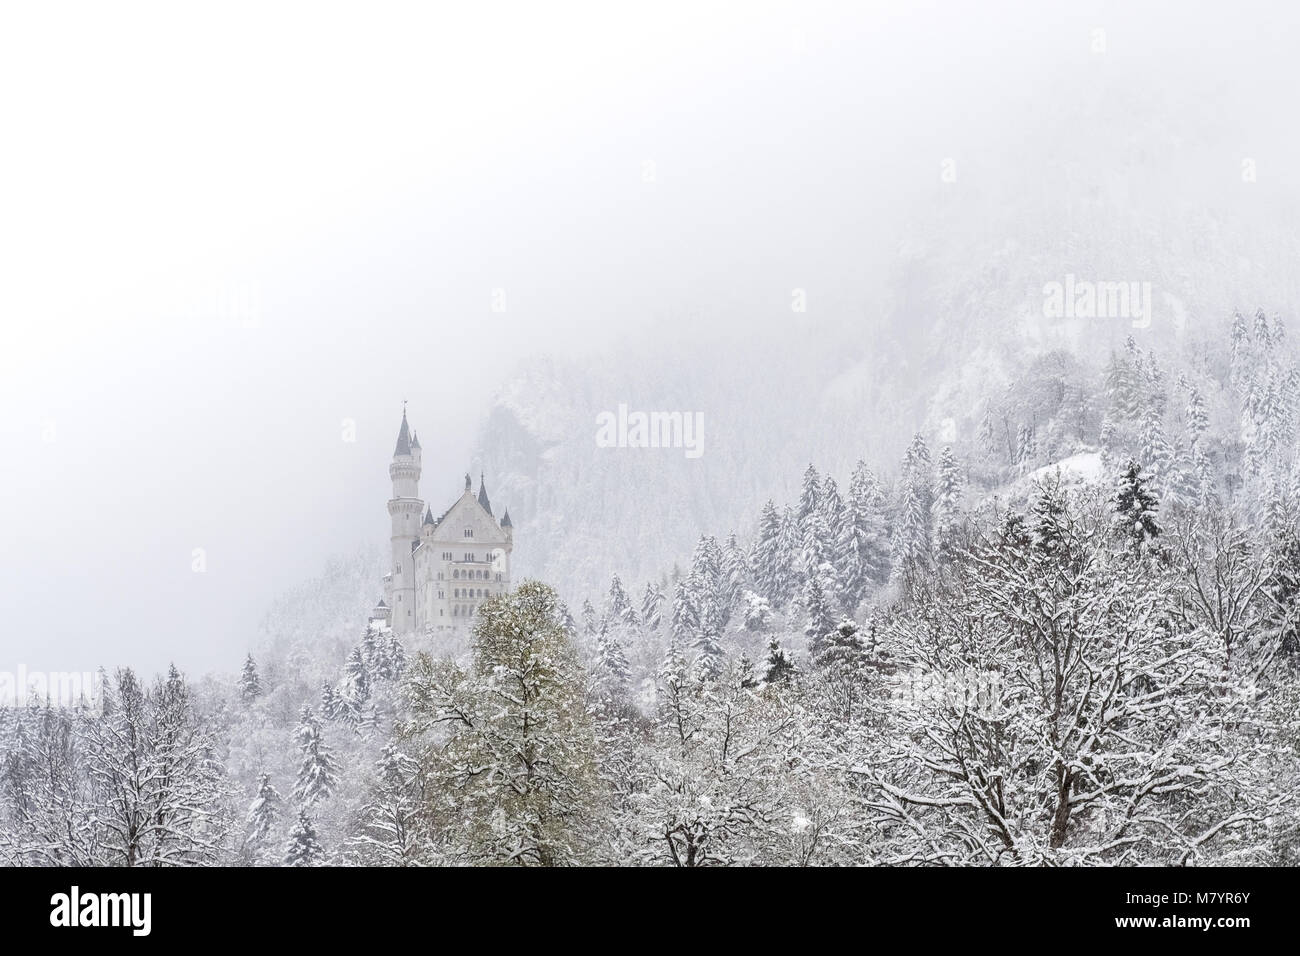 Neuschwanstein Castle in winter landscape. a nineteenth-century Romanesque Revival palace on a rugged hill above - Stock Image